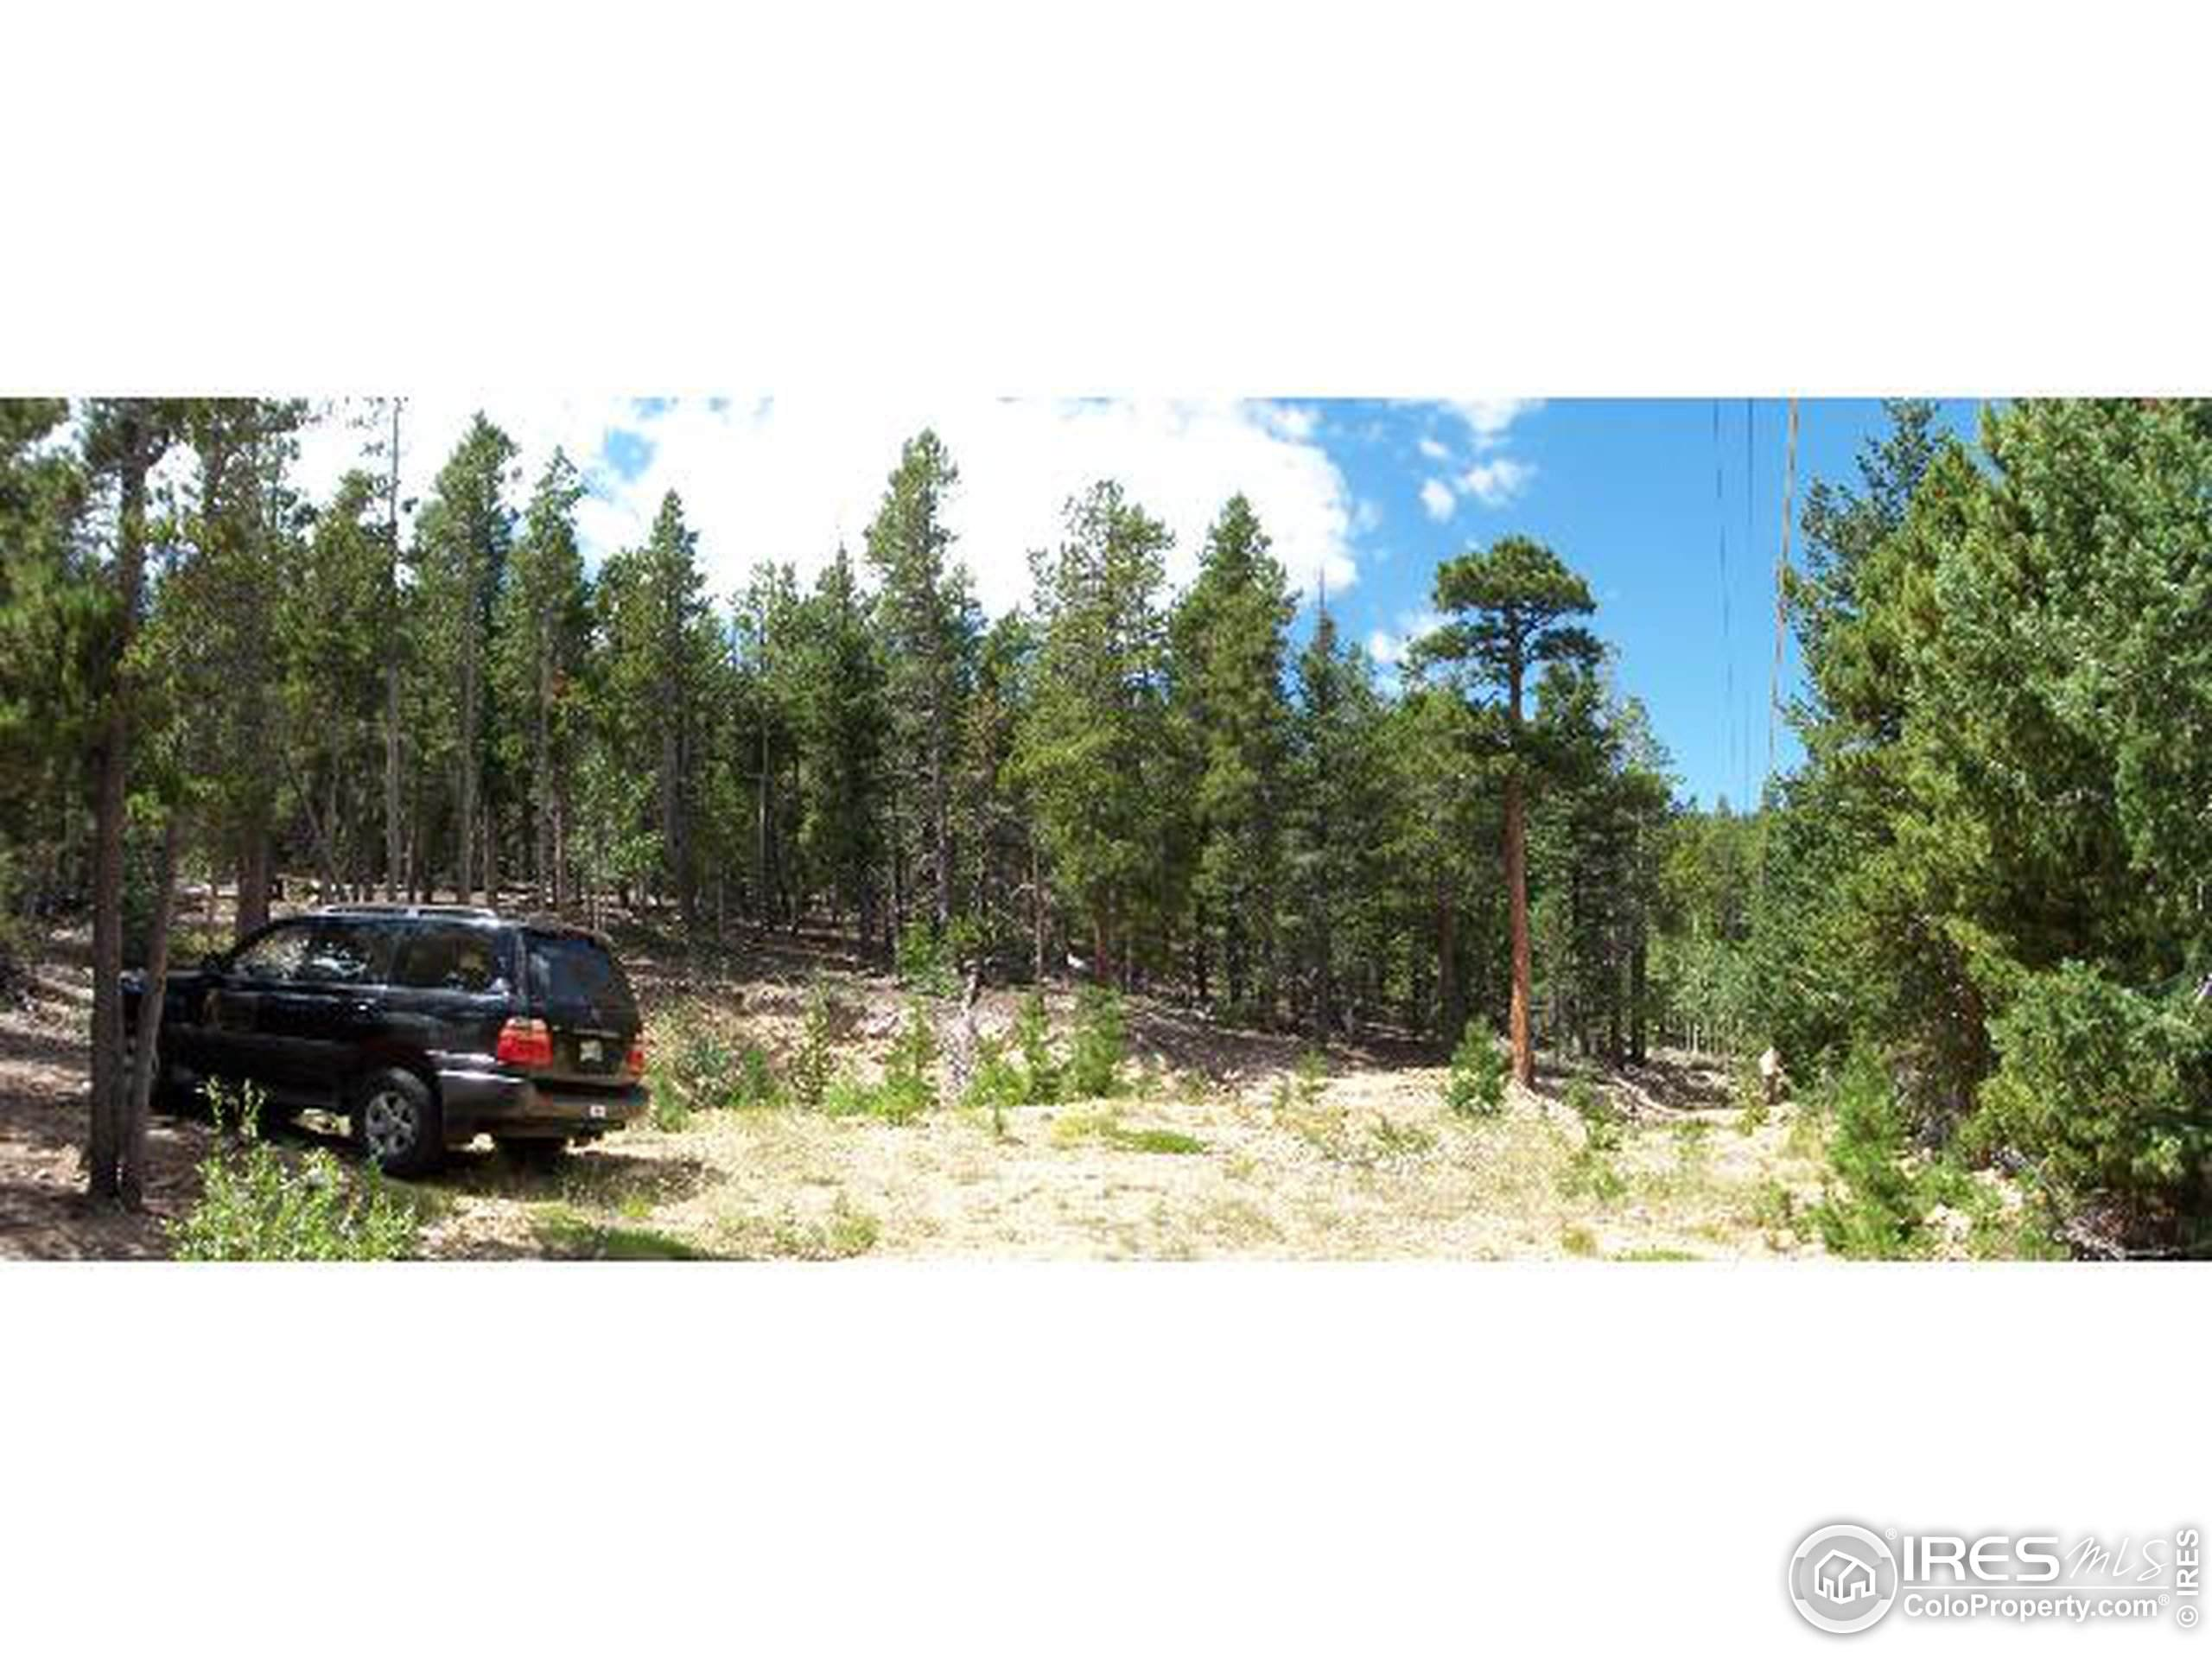 50 Shoshoni Way, Nederland, CO 80466 (MLS #842983) :: Downtown Real Estate Partners